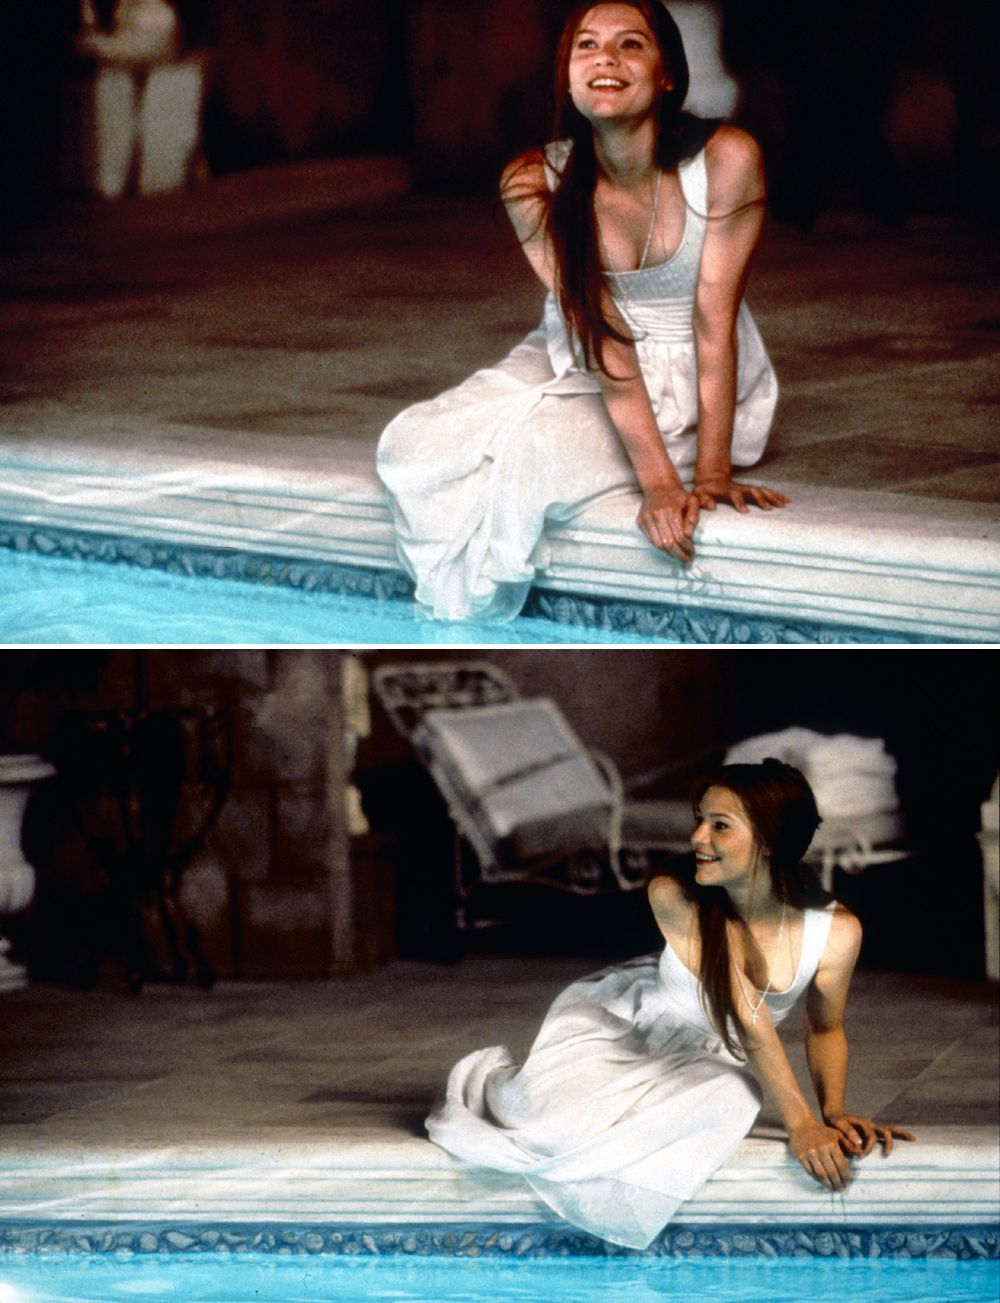 Baz Luhrmann – Romeo and Juliet adaptation for a modern english audience